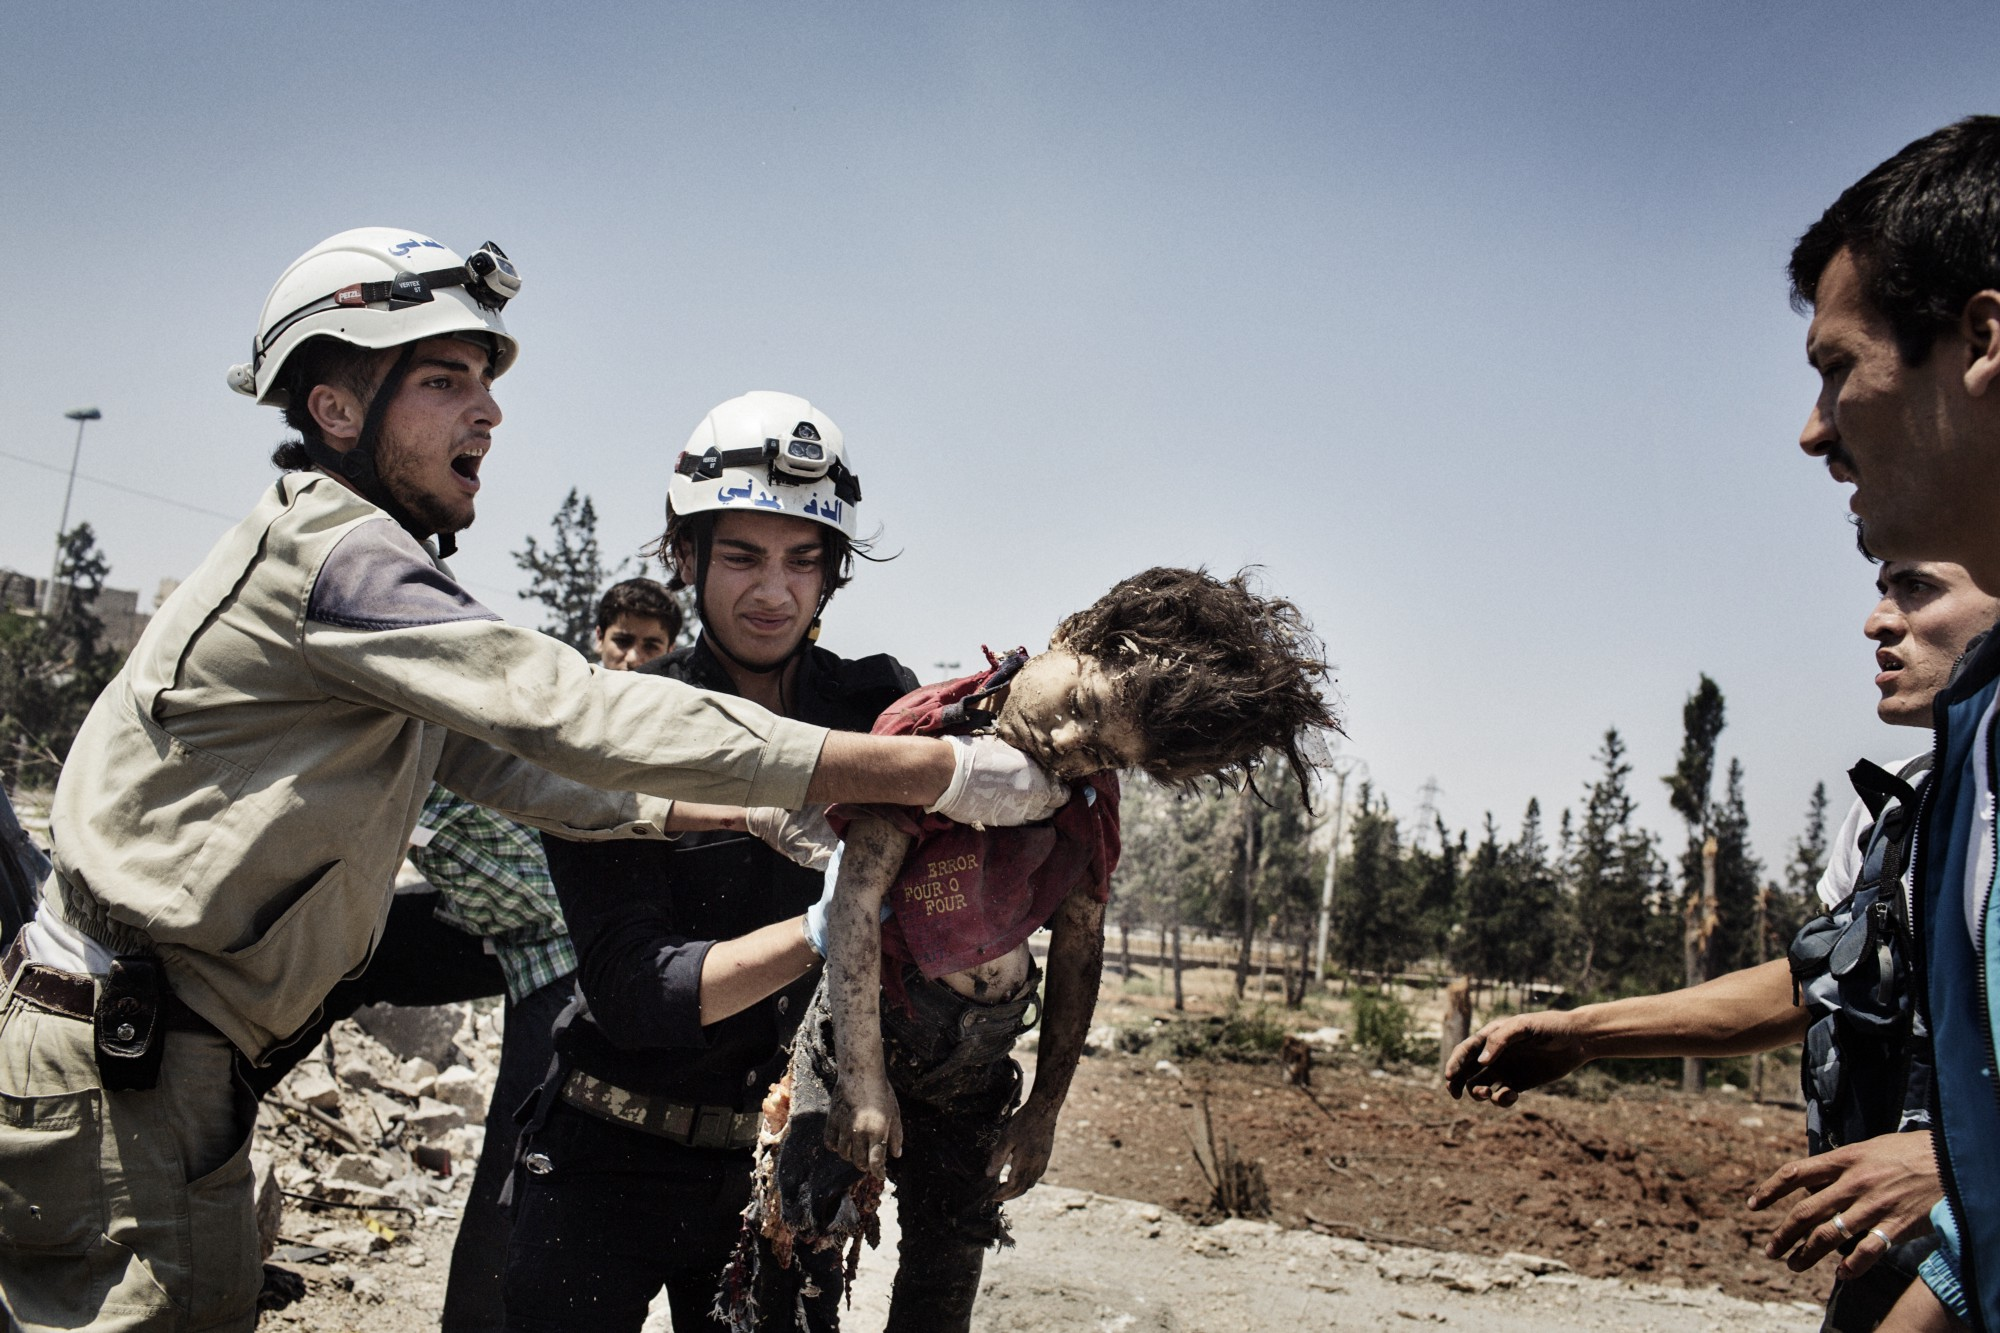 Raw and Unflinching Photographs of First Responders in Syria